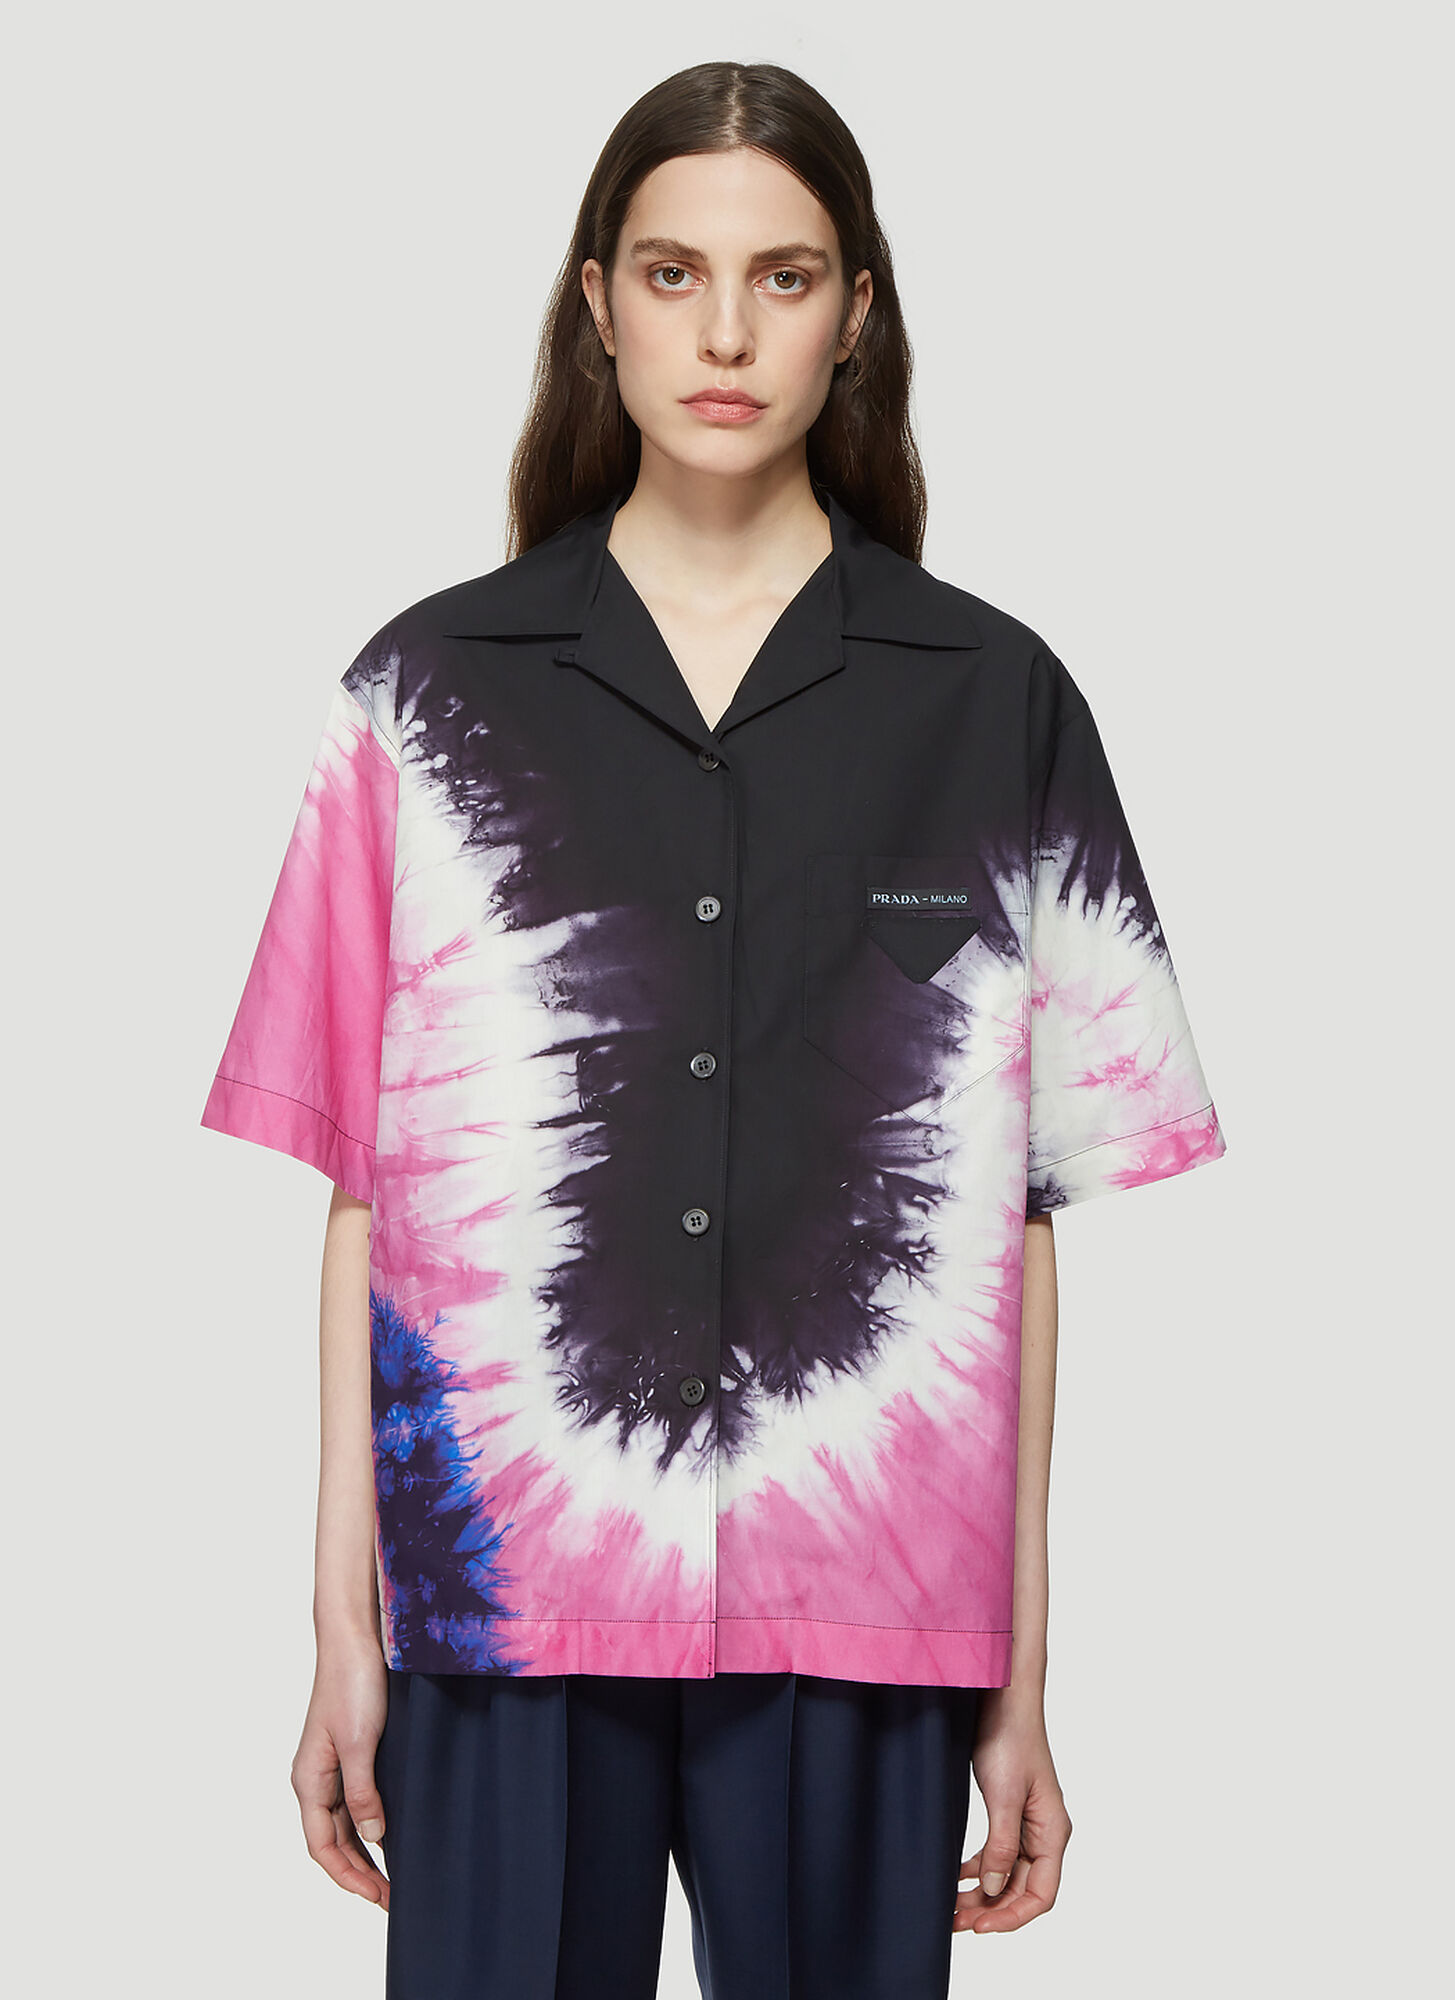 Prada Tie Dye Shirt in Black